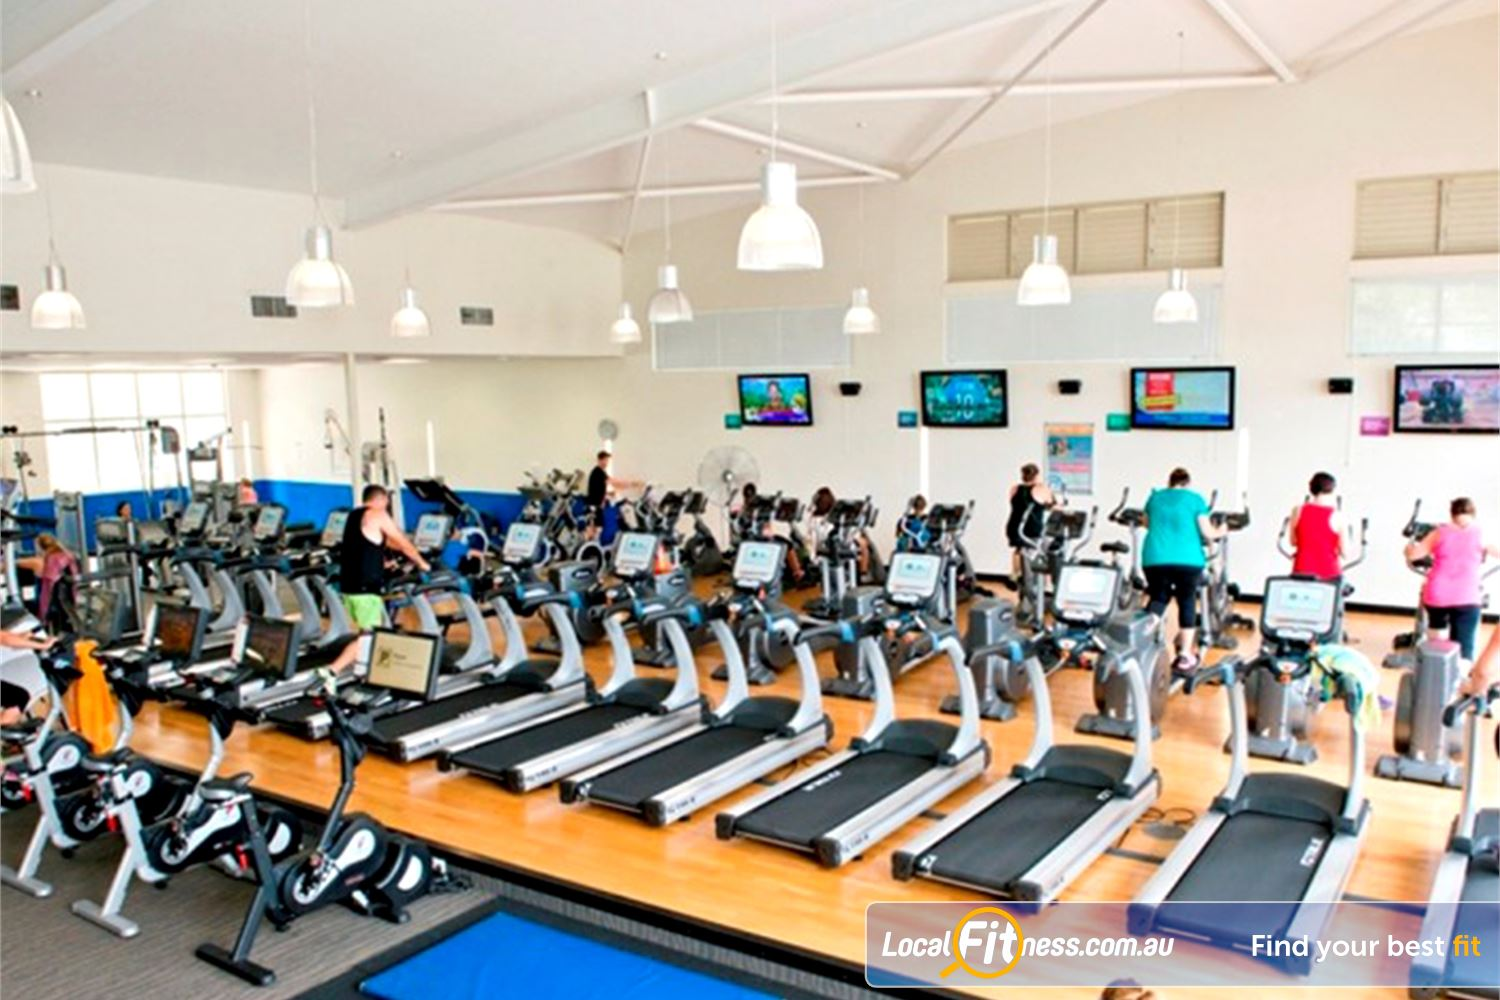 Albany Creek Leisure Centre Near Bunya The spacious cardio area with natural lighting.